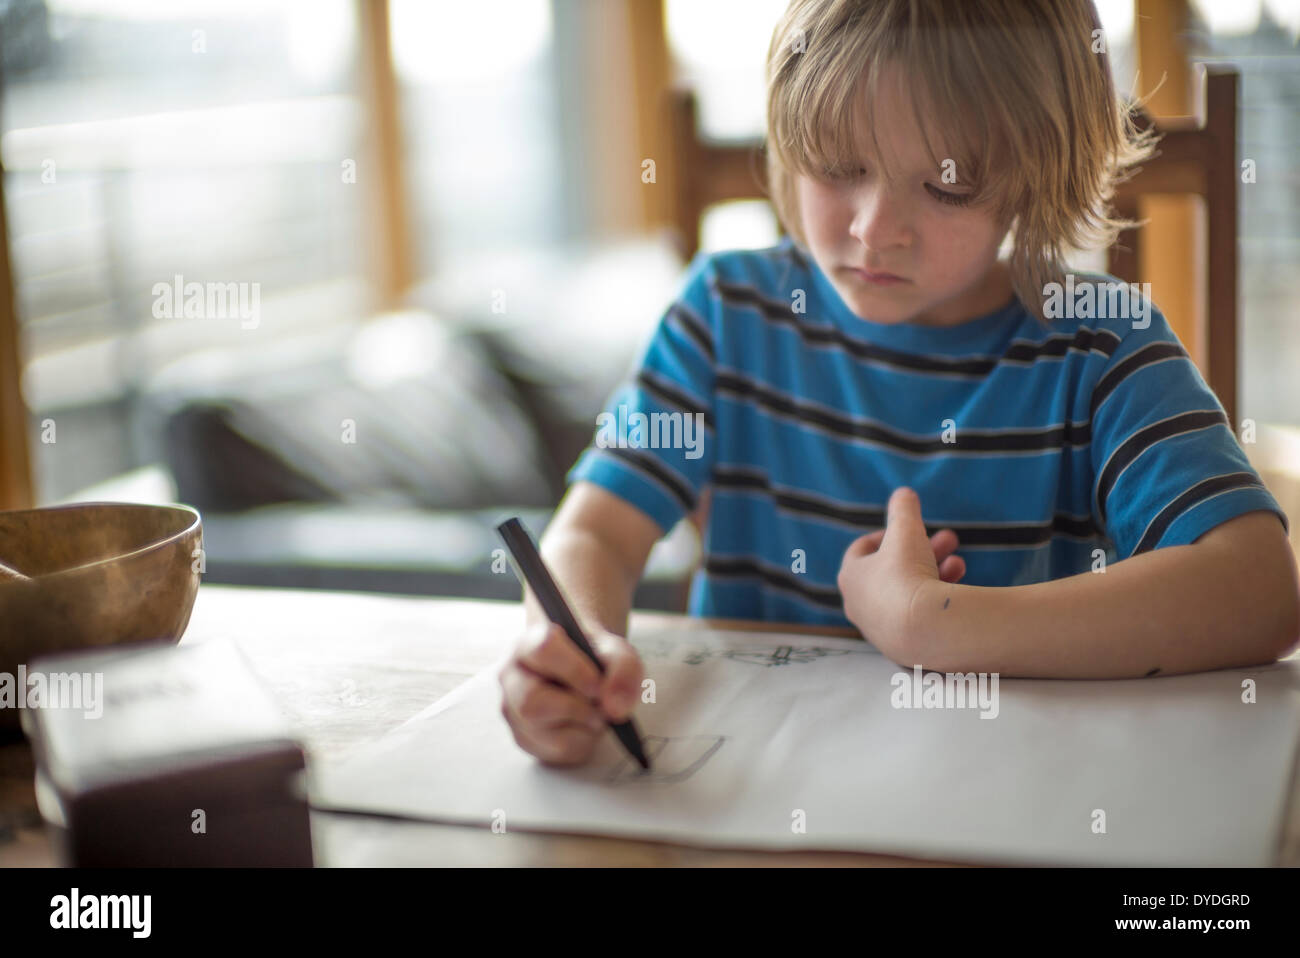 Seven year old boy drawing at the table. - Stock Image